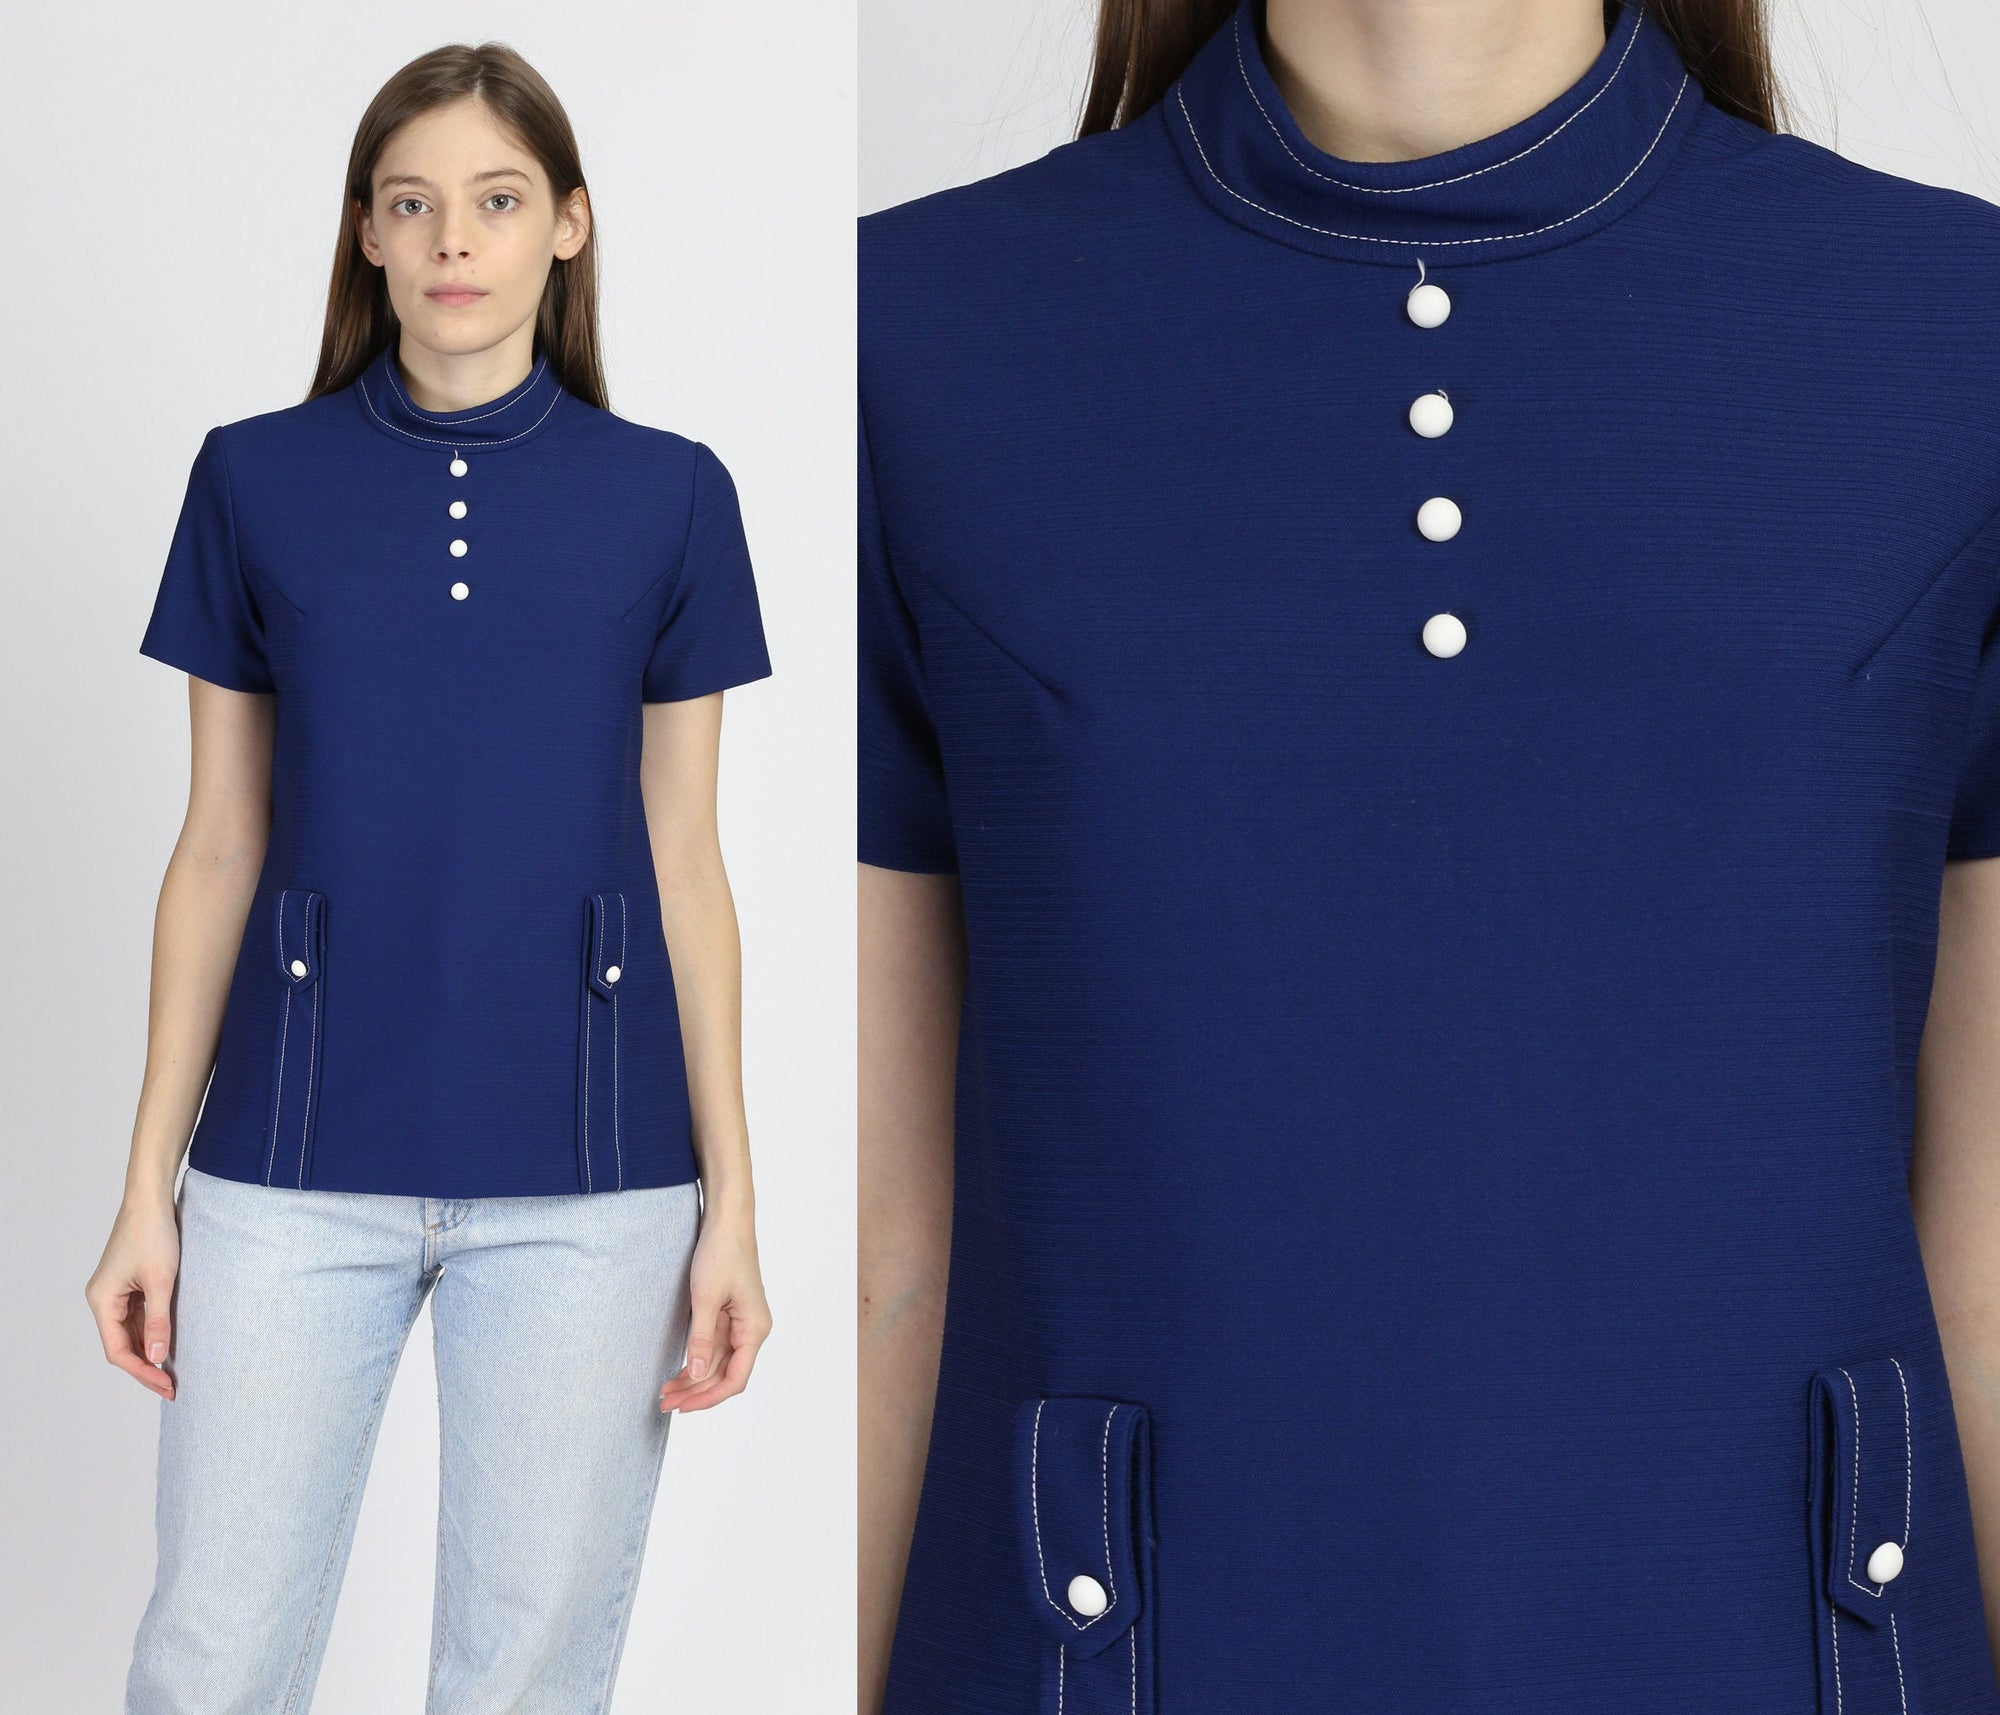 70s Mod Navy Blue Top - Small